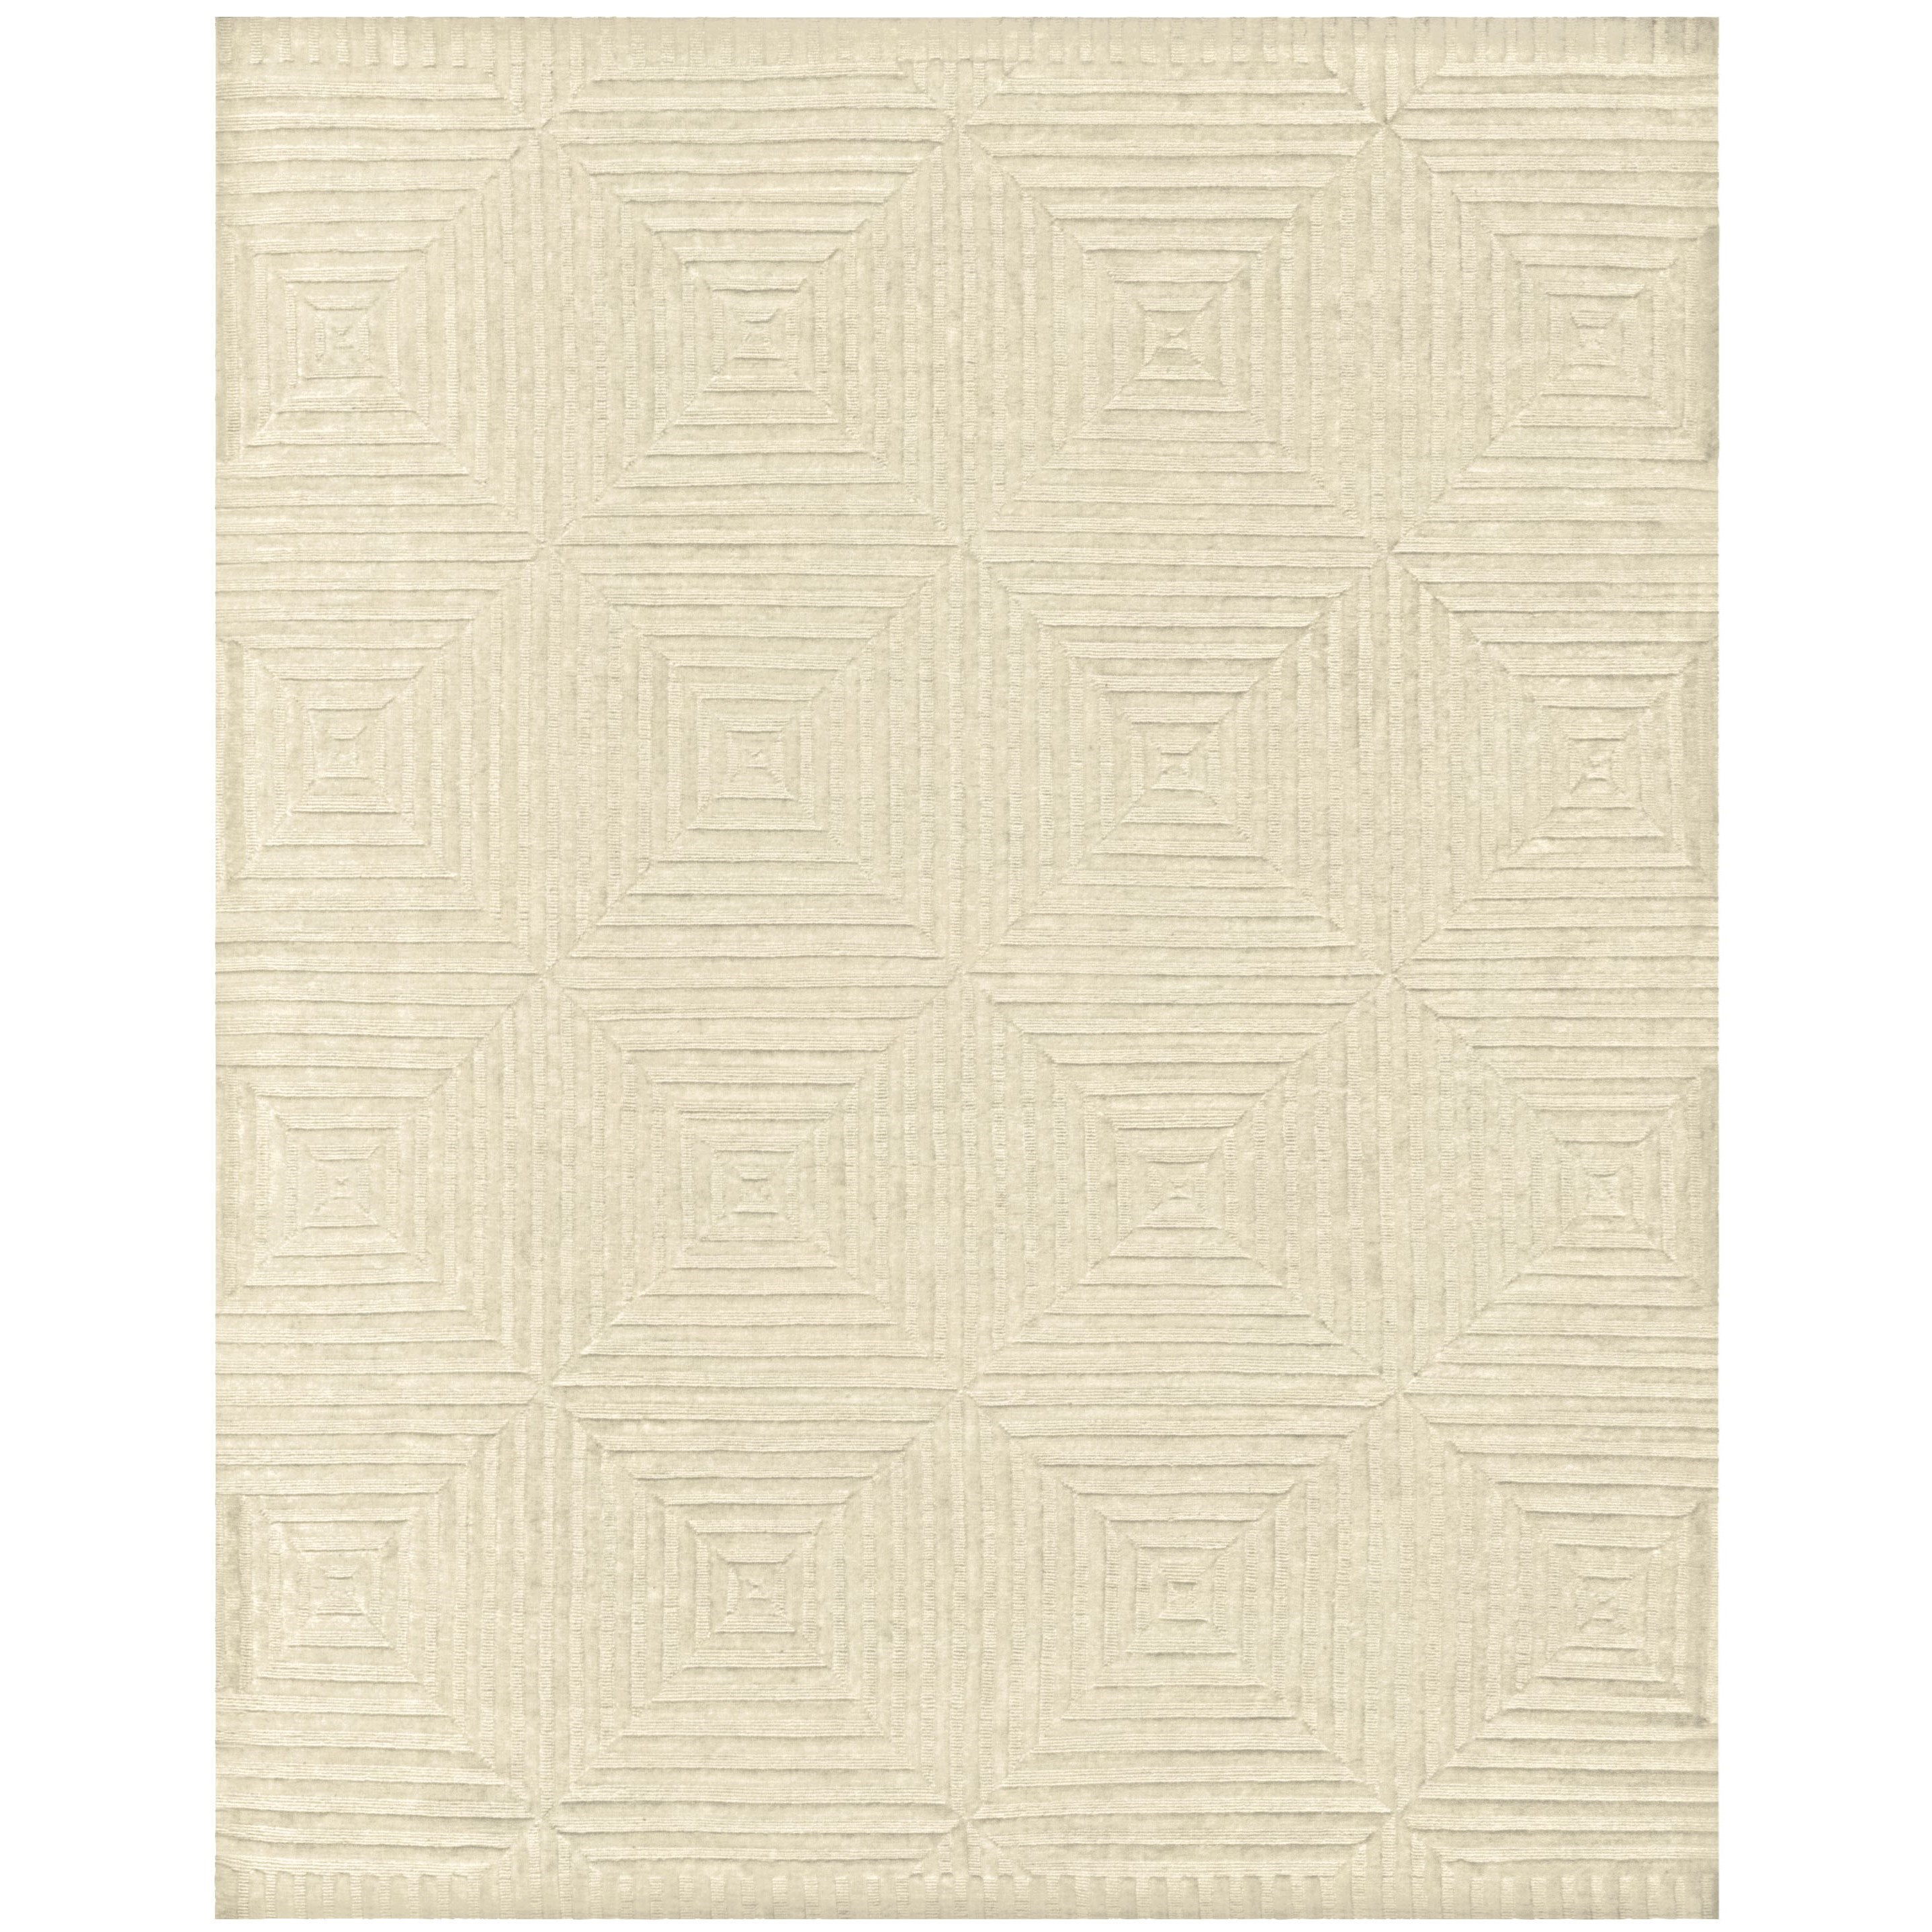 "Channels Ivory 7'-9"" x 9'-9"" Area Rug by Feizy Rugs at Sprintz Furniture"